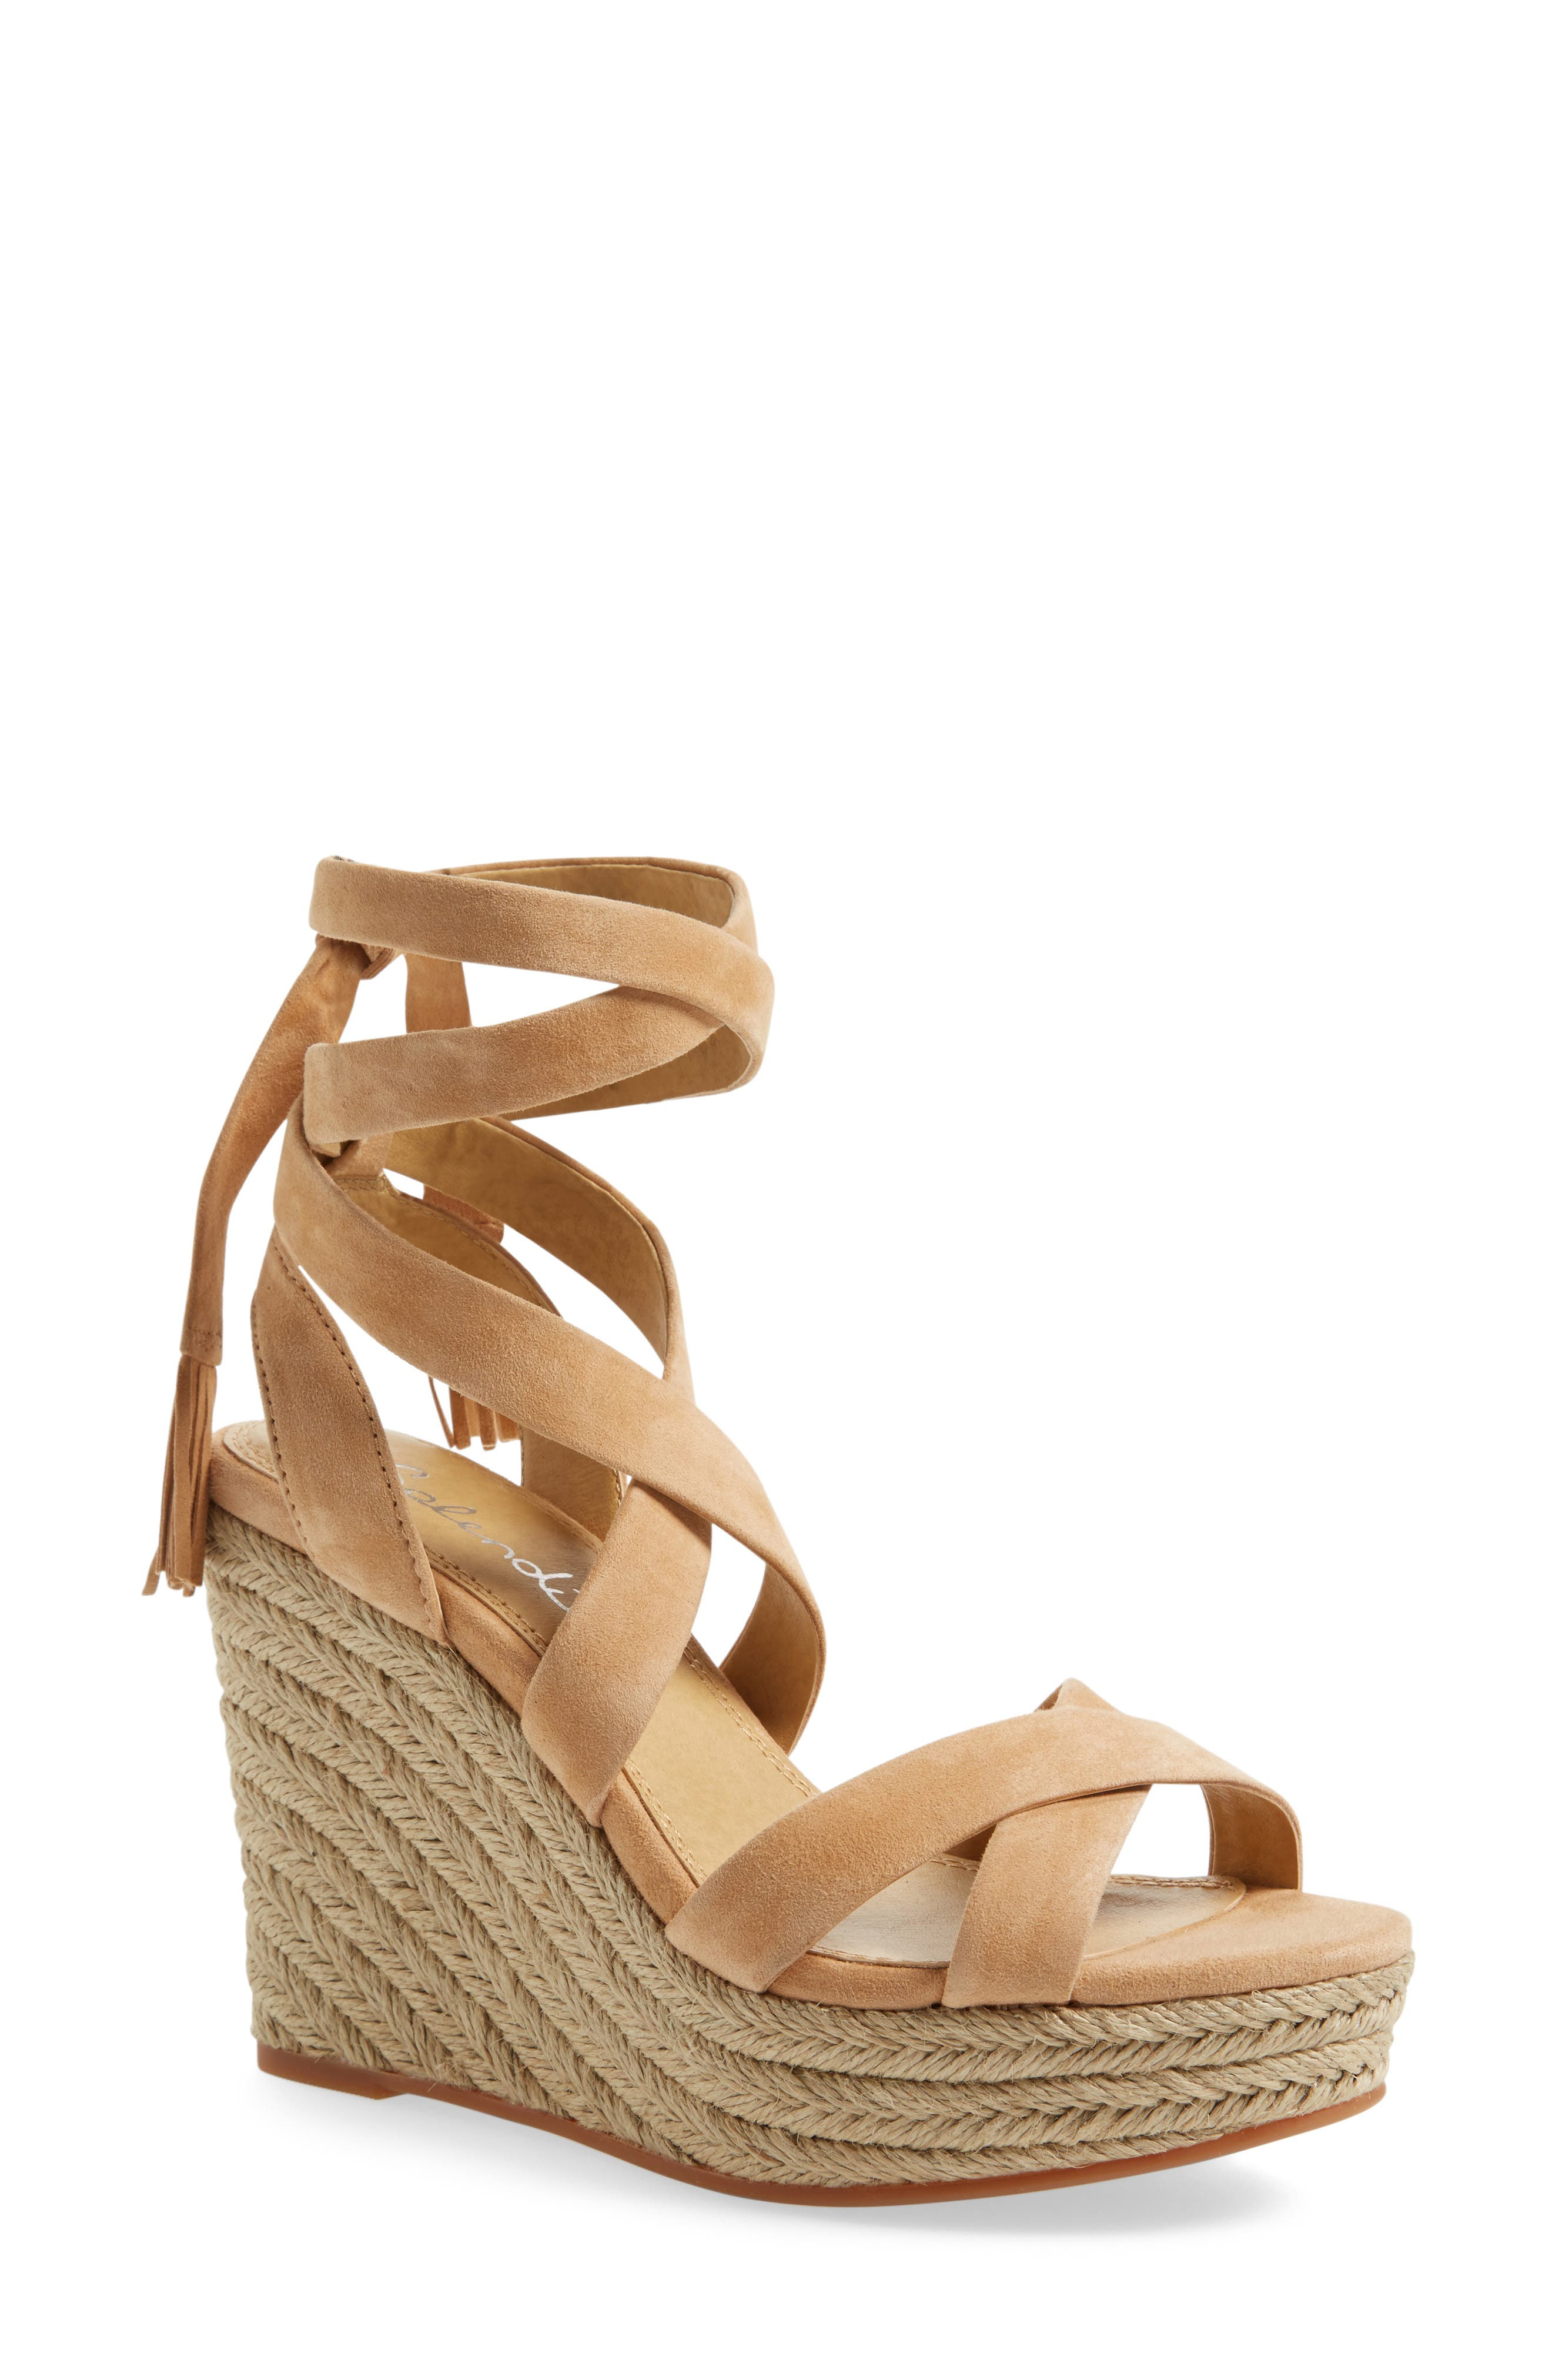 Alternate Image 1 Selected - Splendid Janice Espadrille Wedge Sandal (Women)